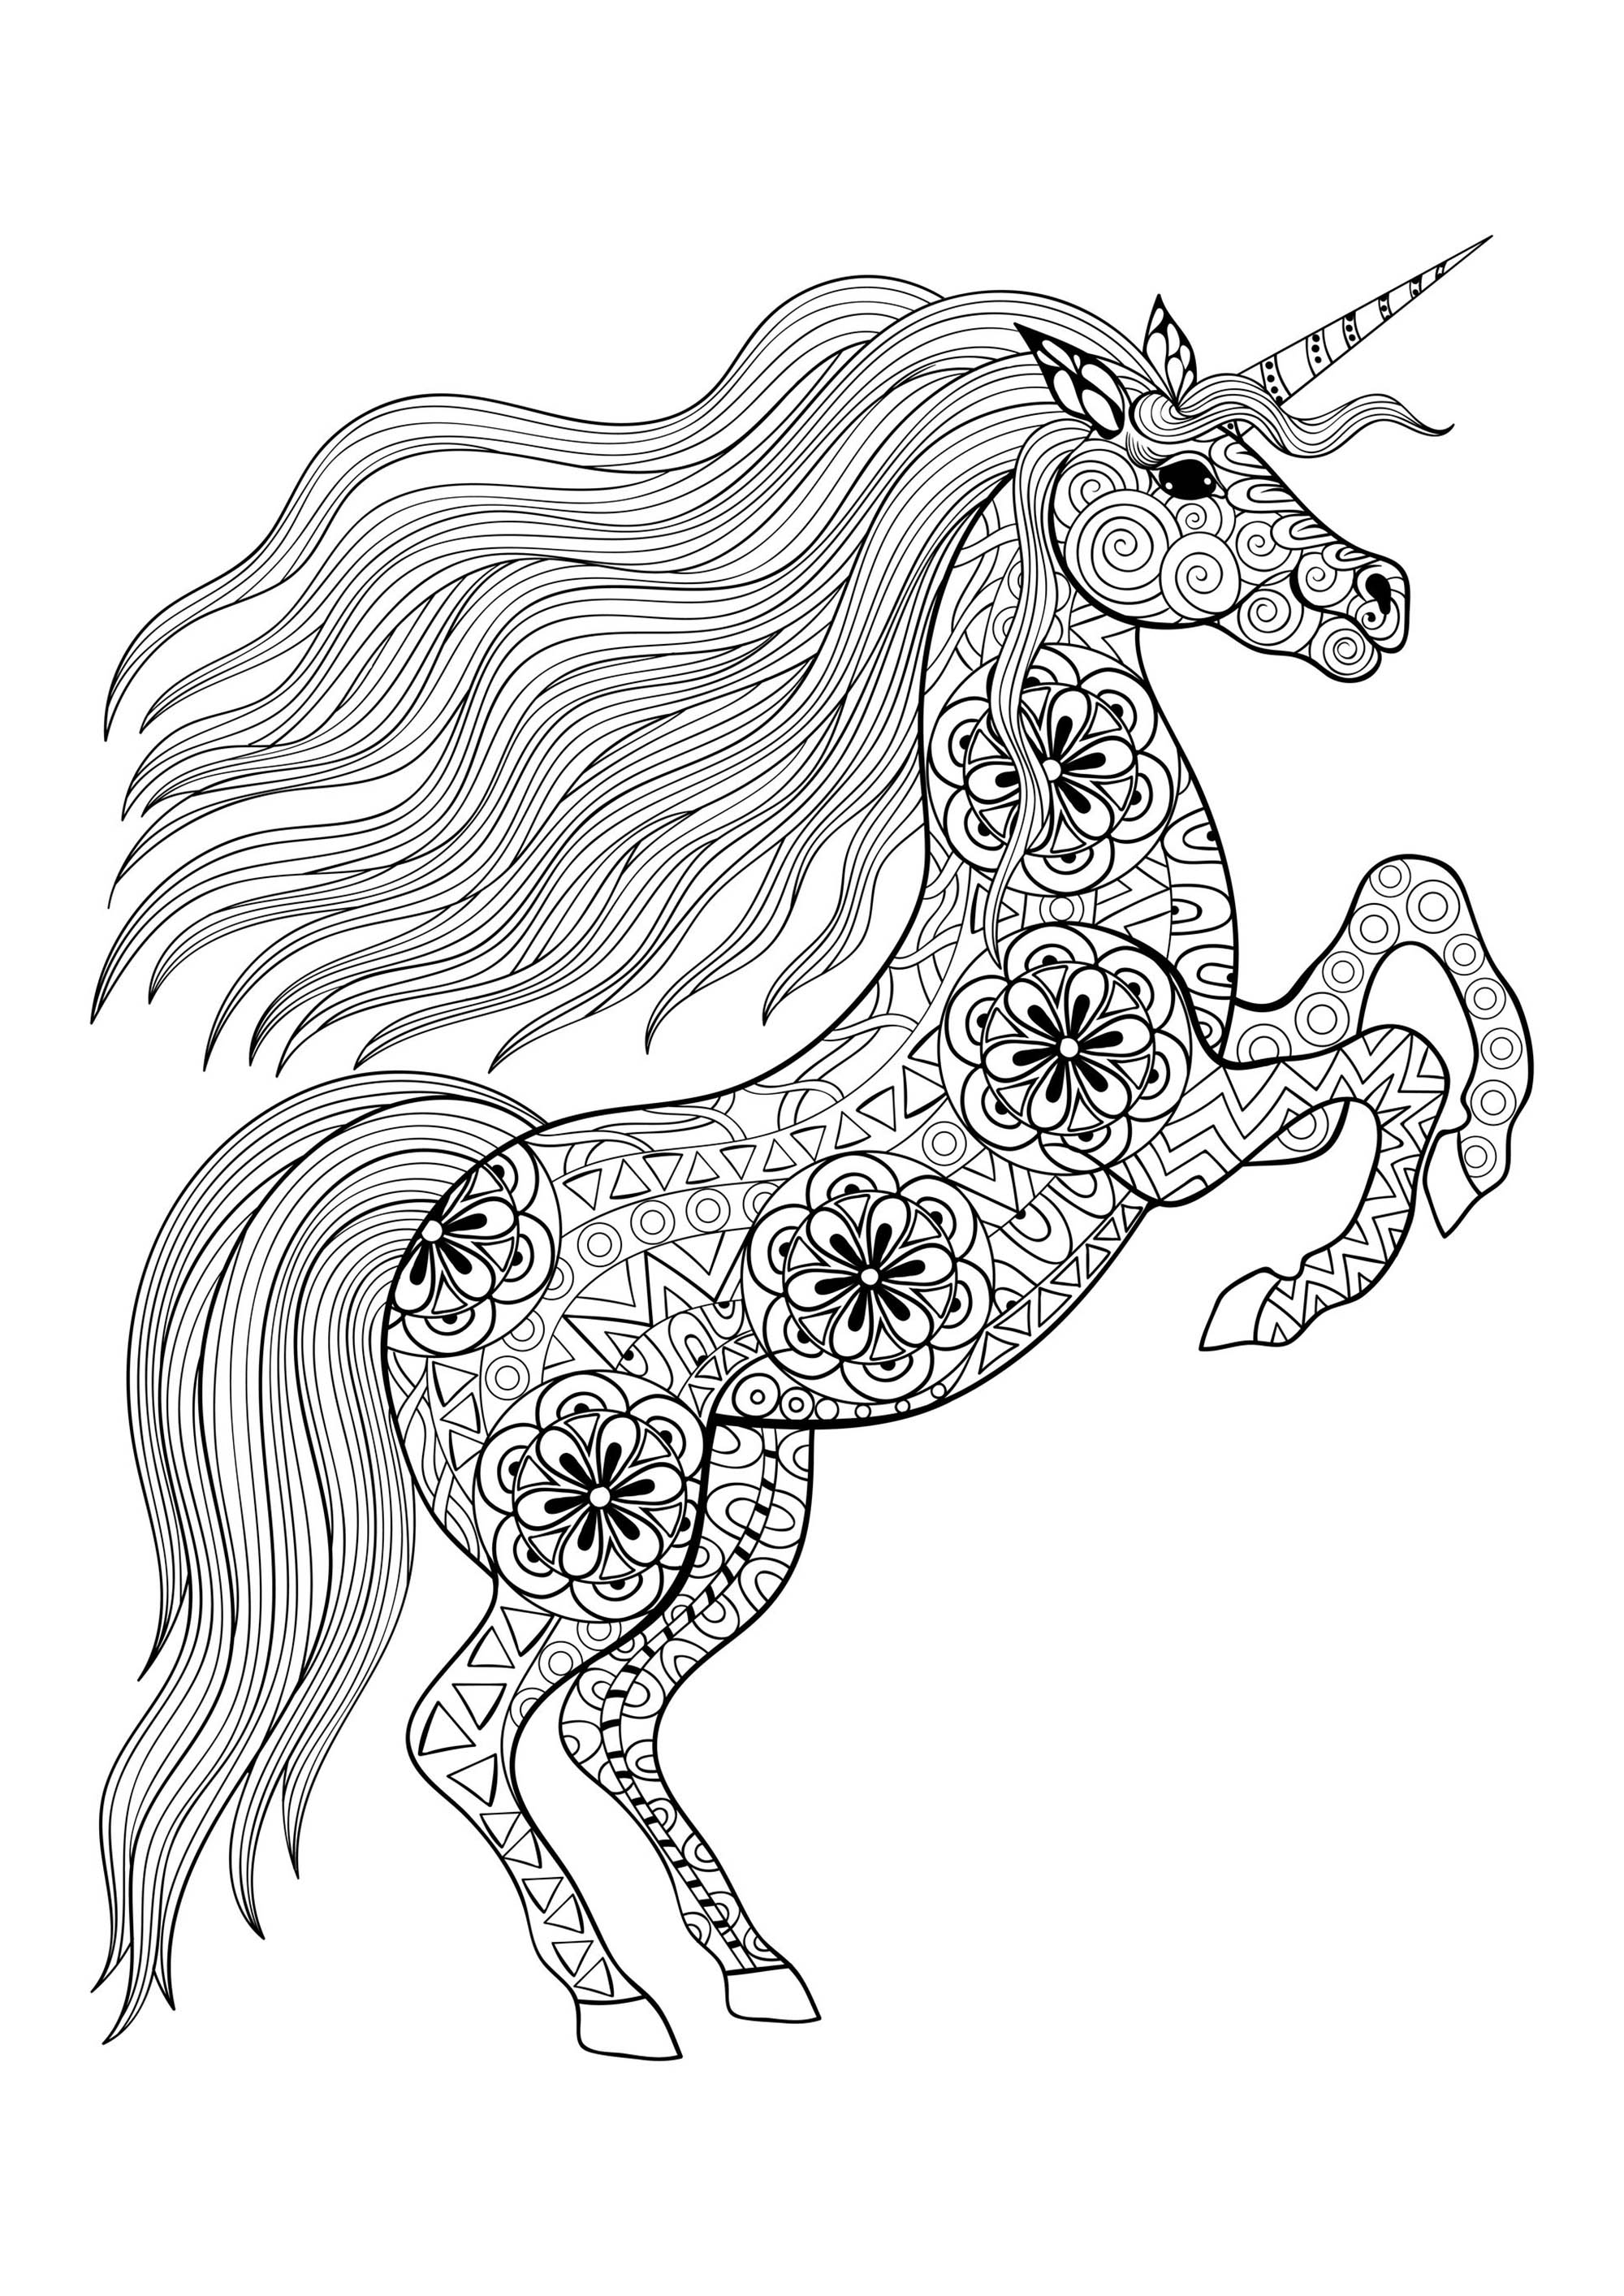 Unicorn on its two back legs Unicorns Adult Coloring Pages